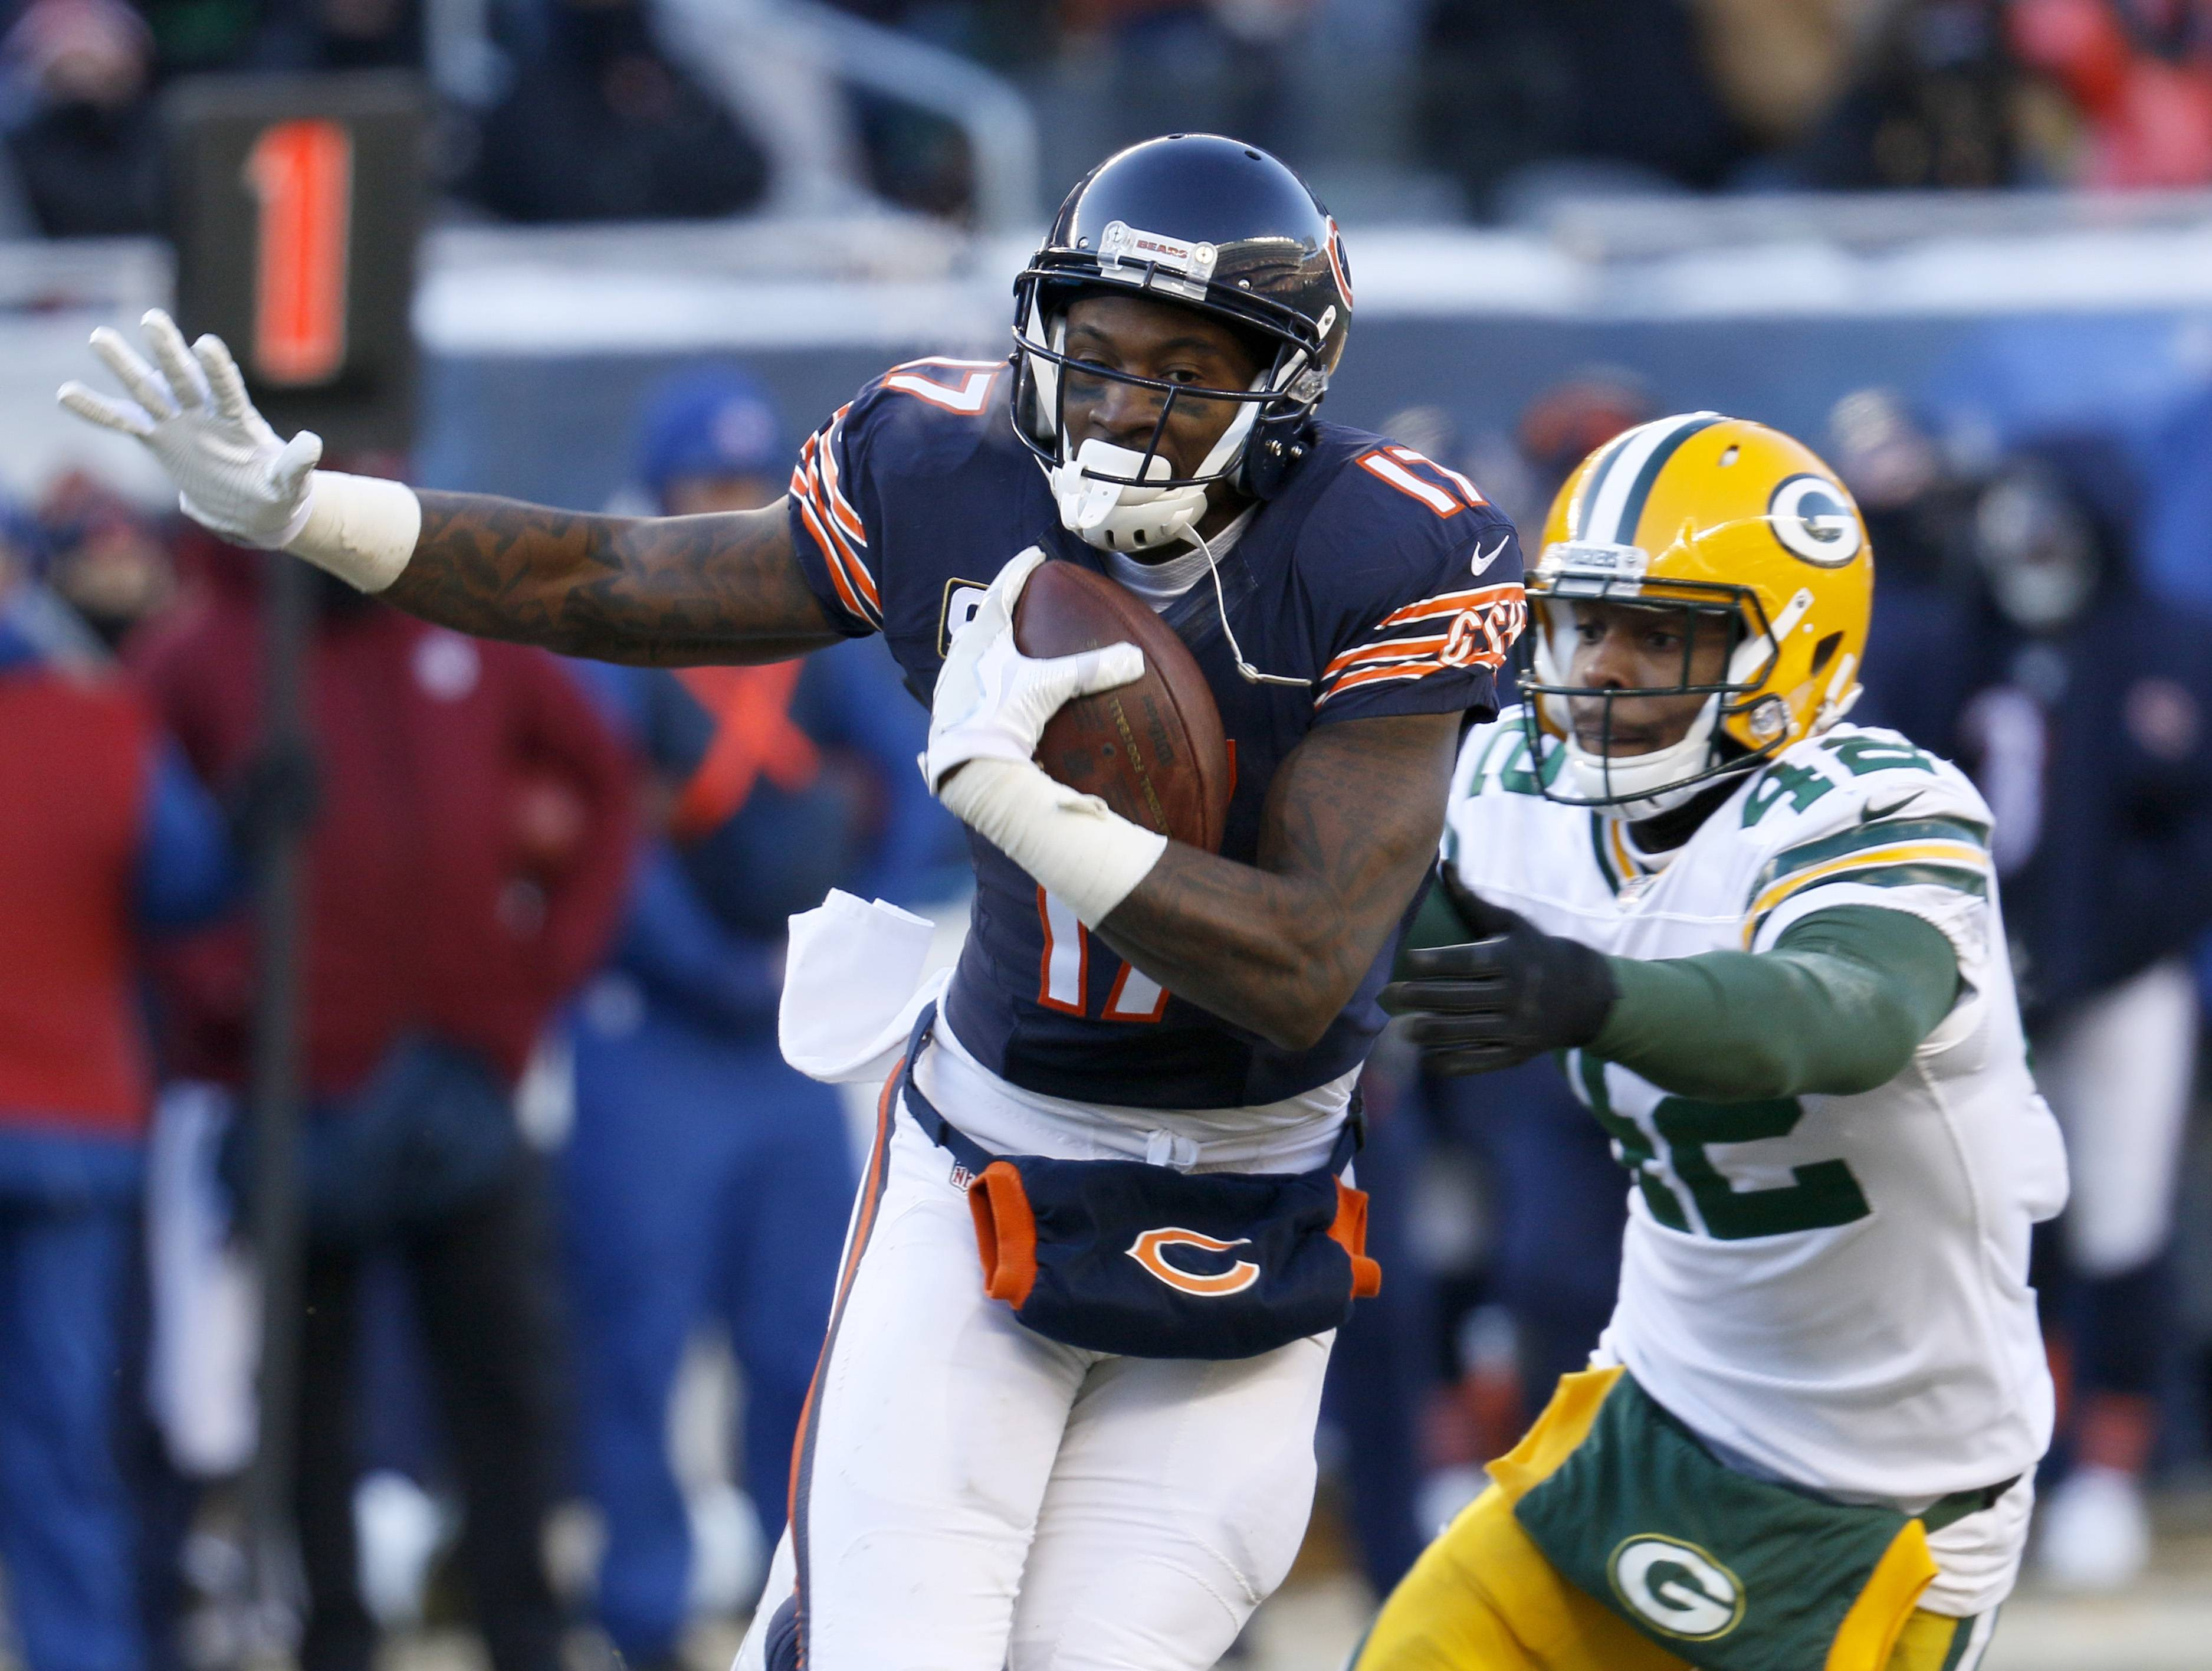 Chicago Bears wide receiver Alshon Jeffery is expected to become a free agent on March 9 and sign with another NFL team. Multiple reports say the Bears will not use a $17.5 million franchise tag to keep Jeffery.